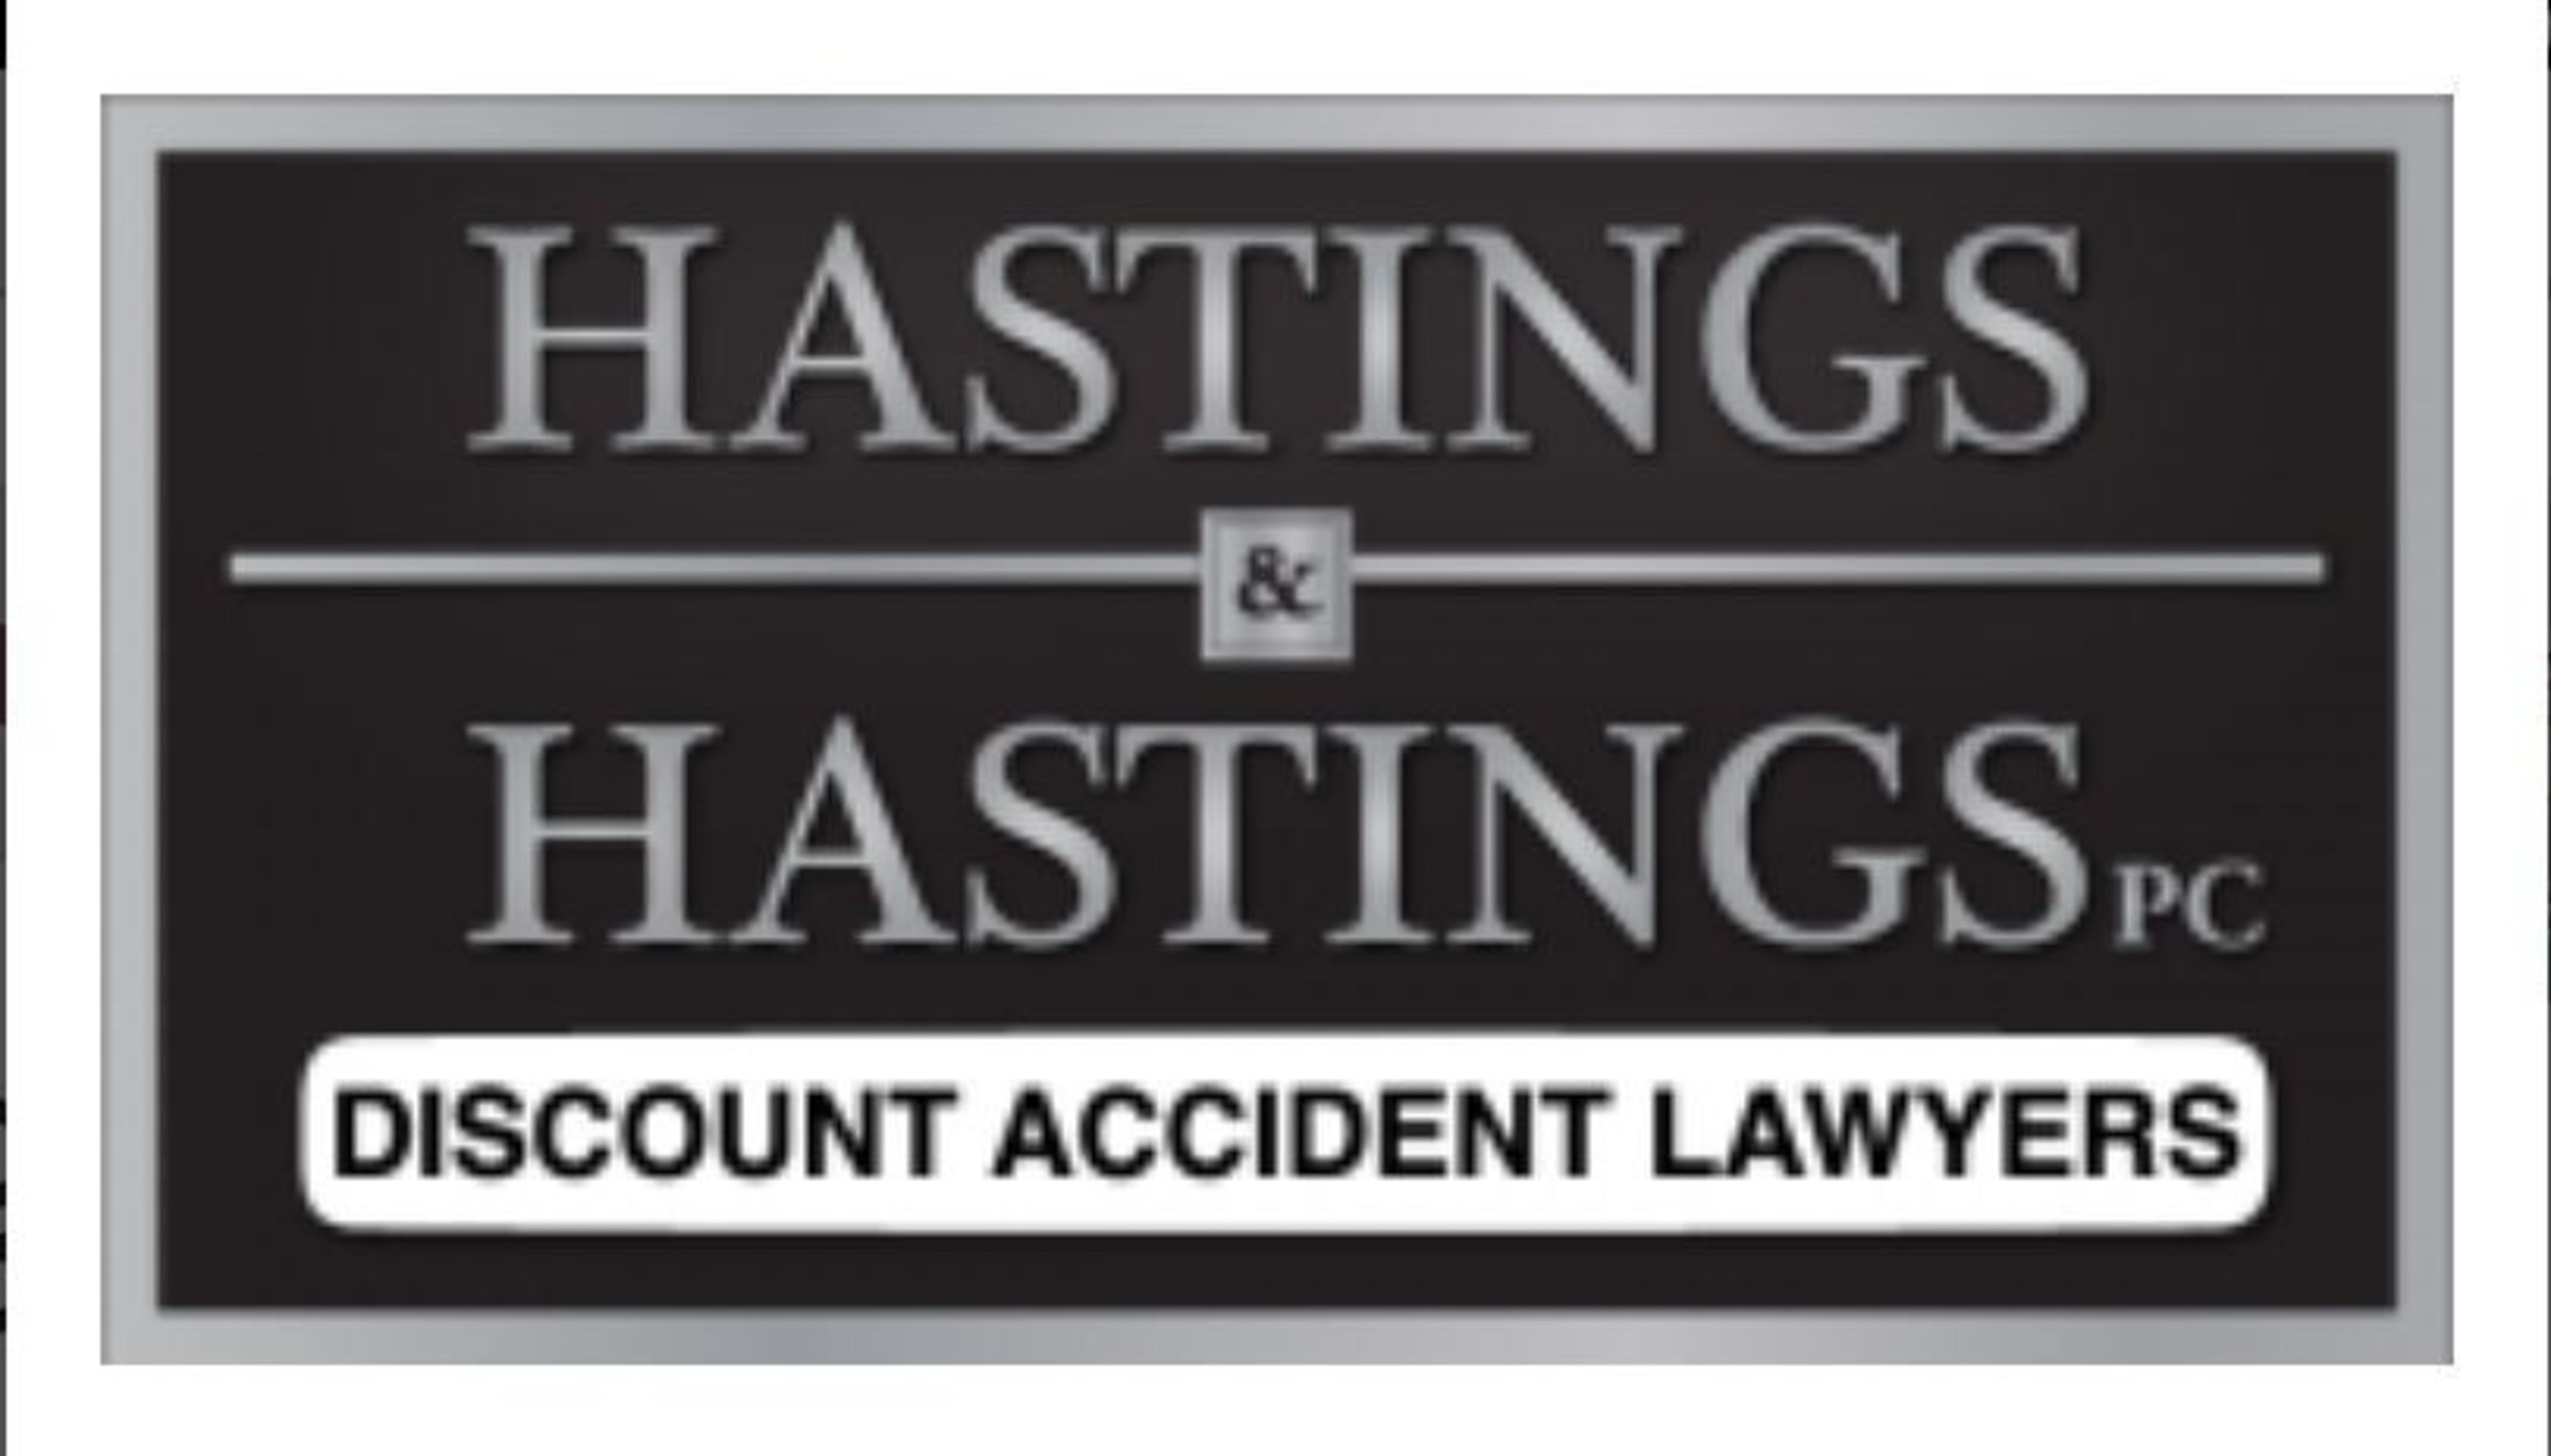 Hastings & Hastings Notes a Spike in Winter Traffic